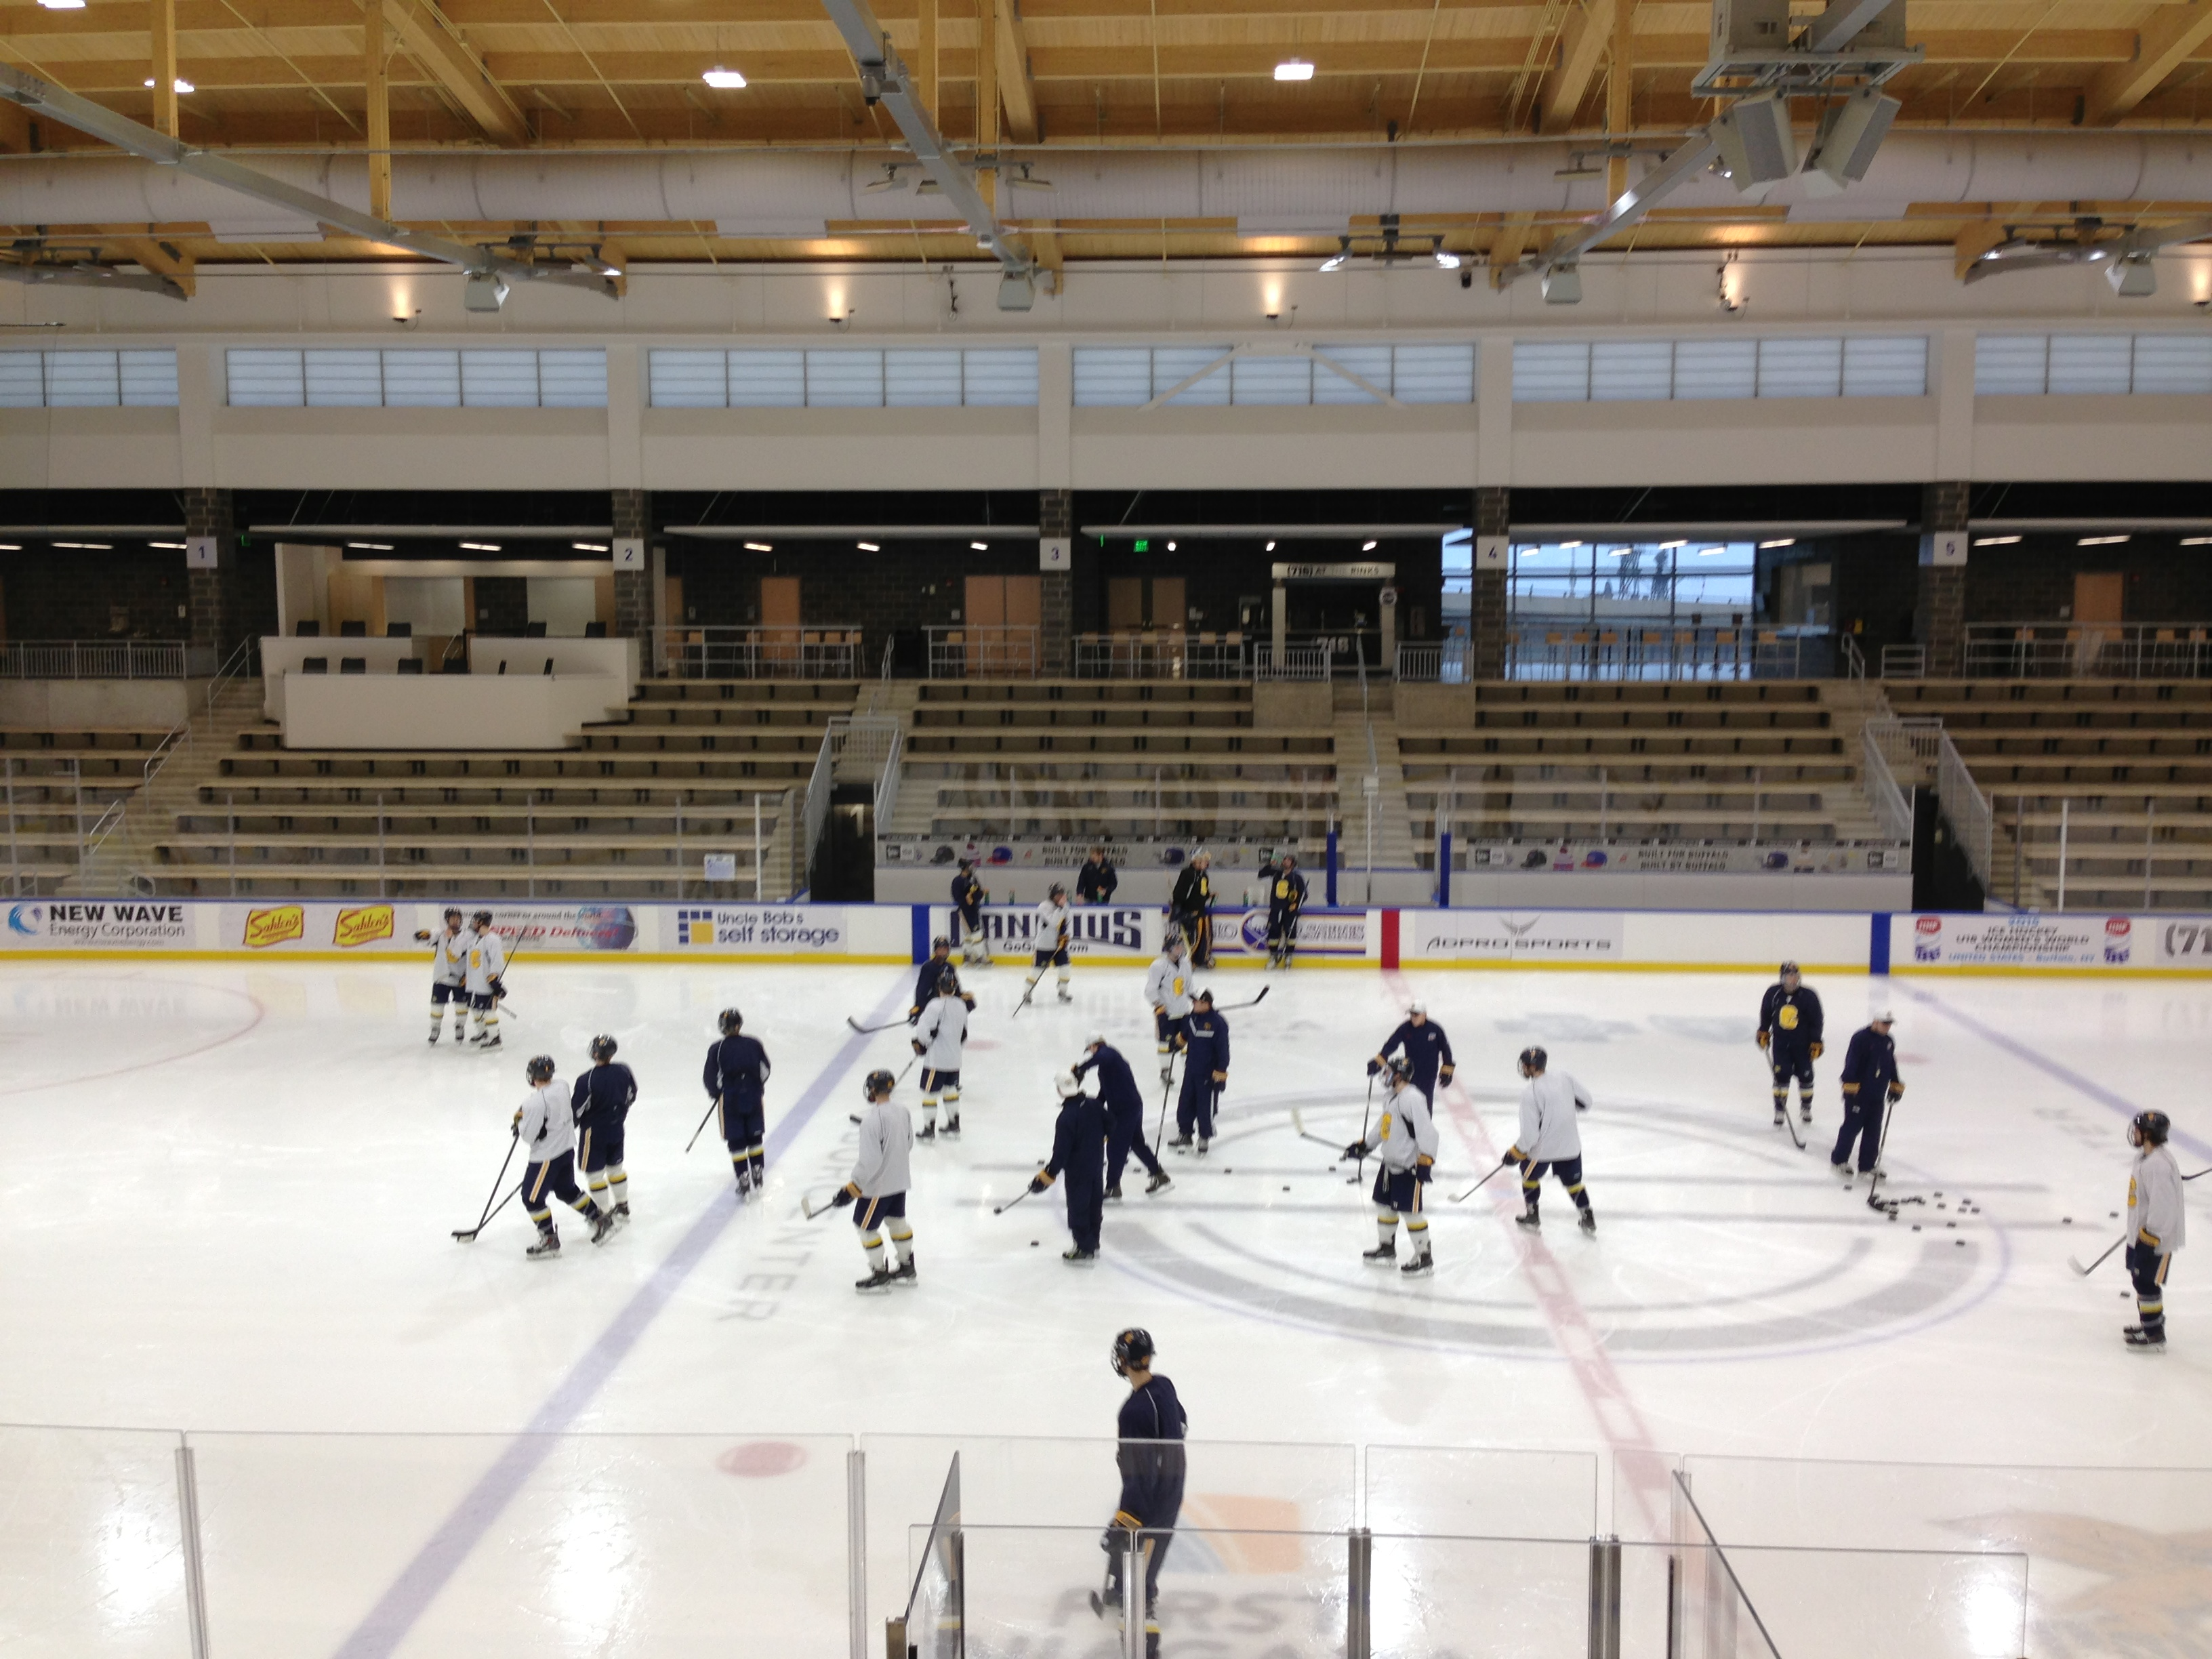 Canisius and Niagara will be able to award 18 hockey scholarships by 2021.